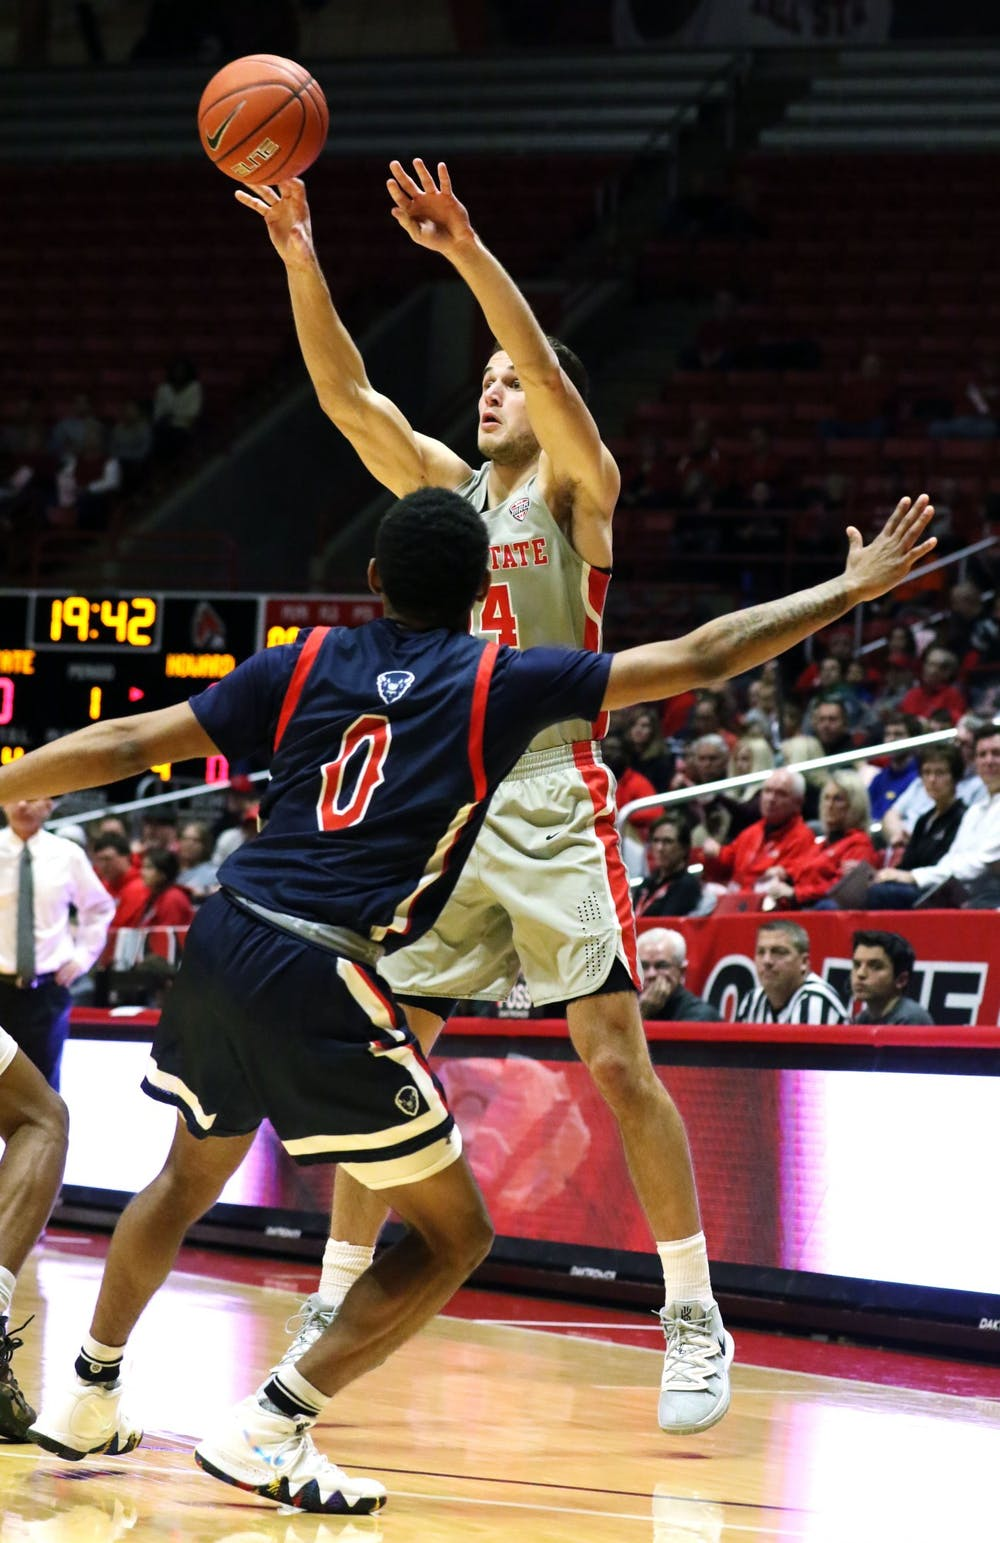 3-ball comes alive as Ball State Men's Basketball rolls Howard